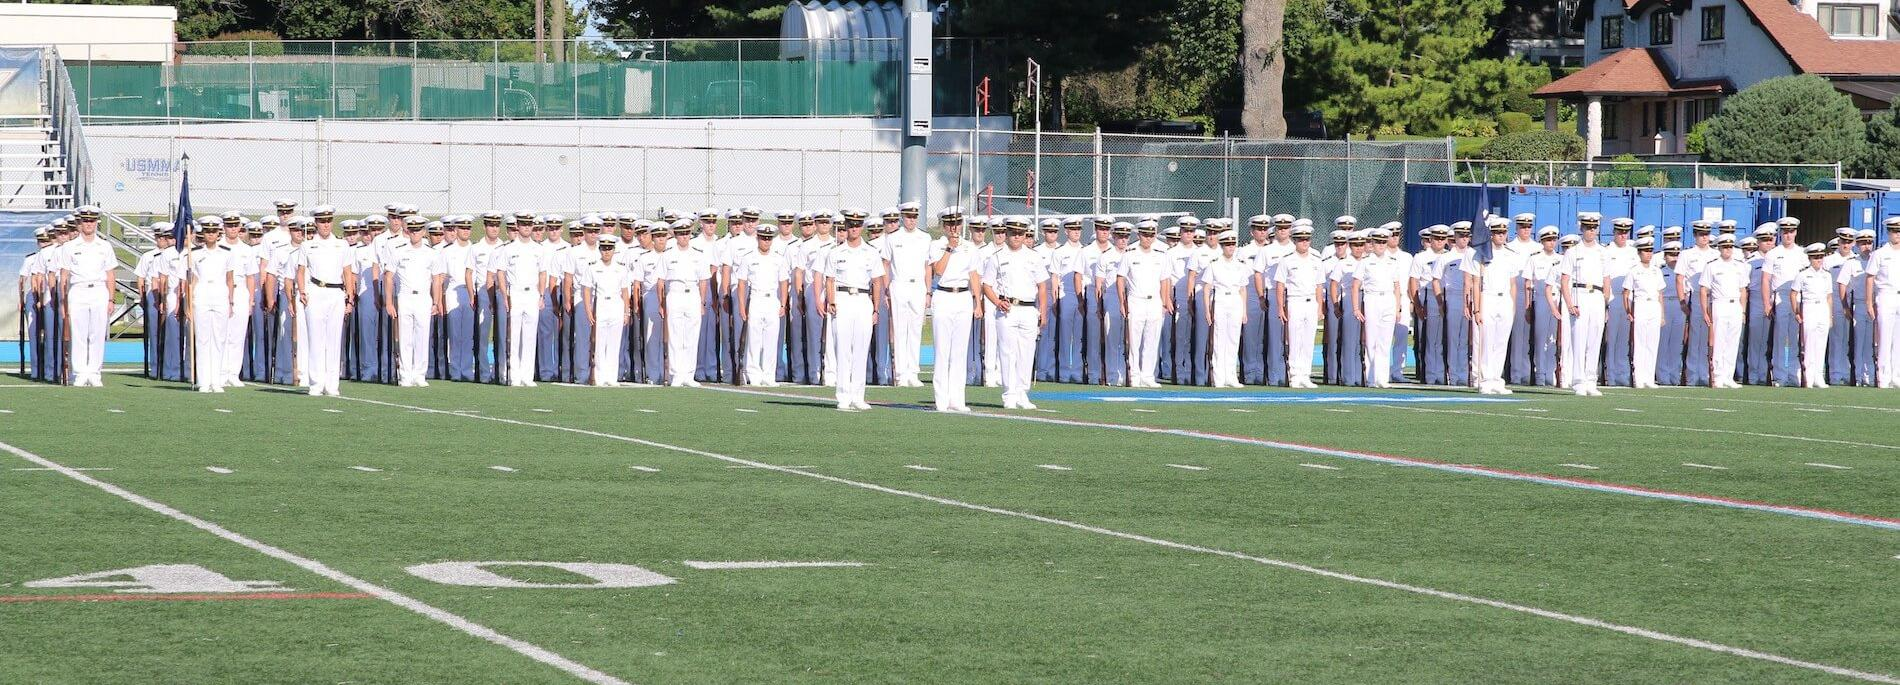 Cadets standing in formation